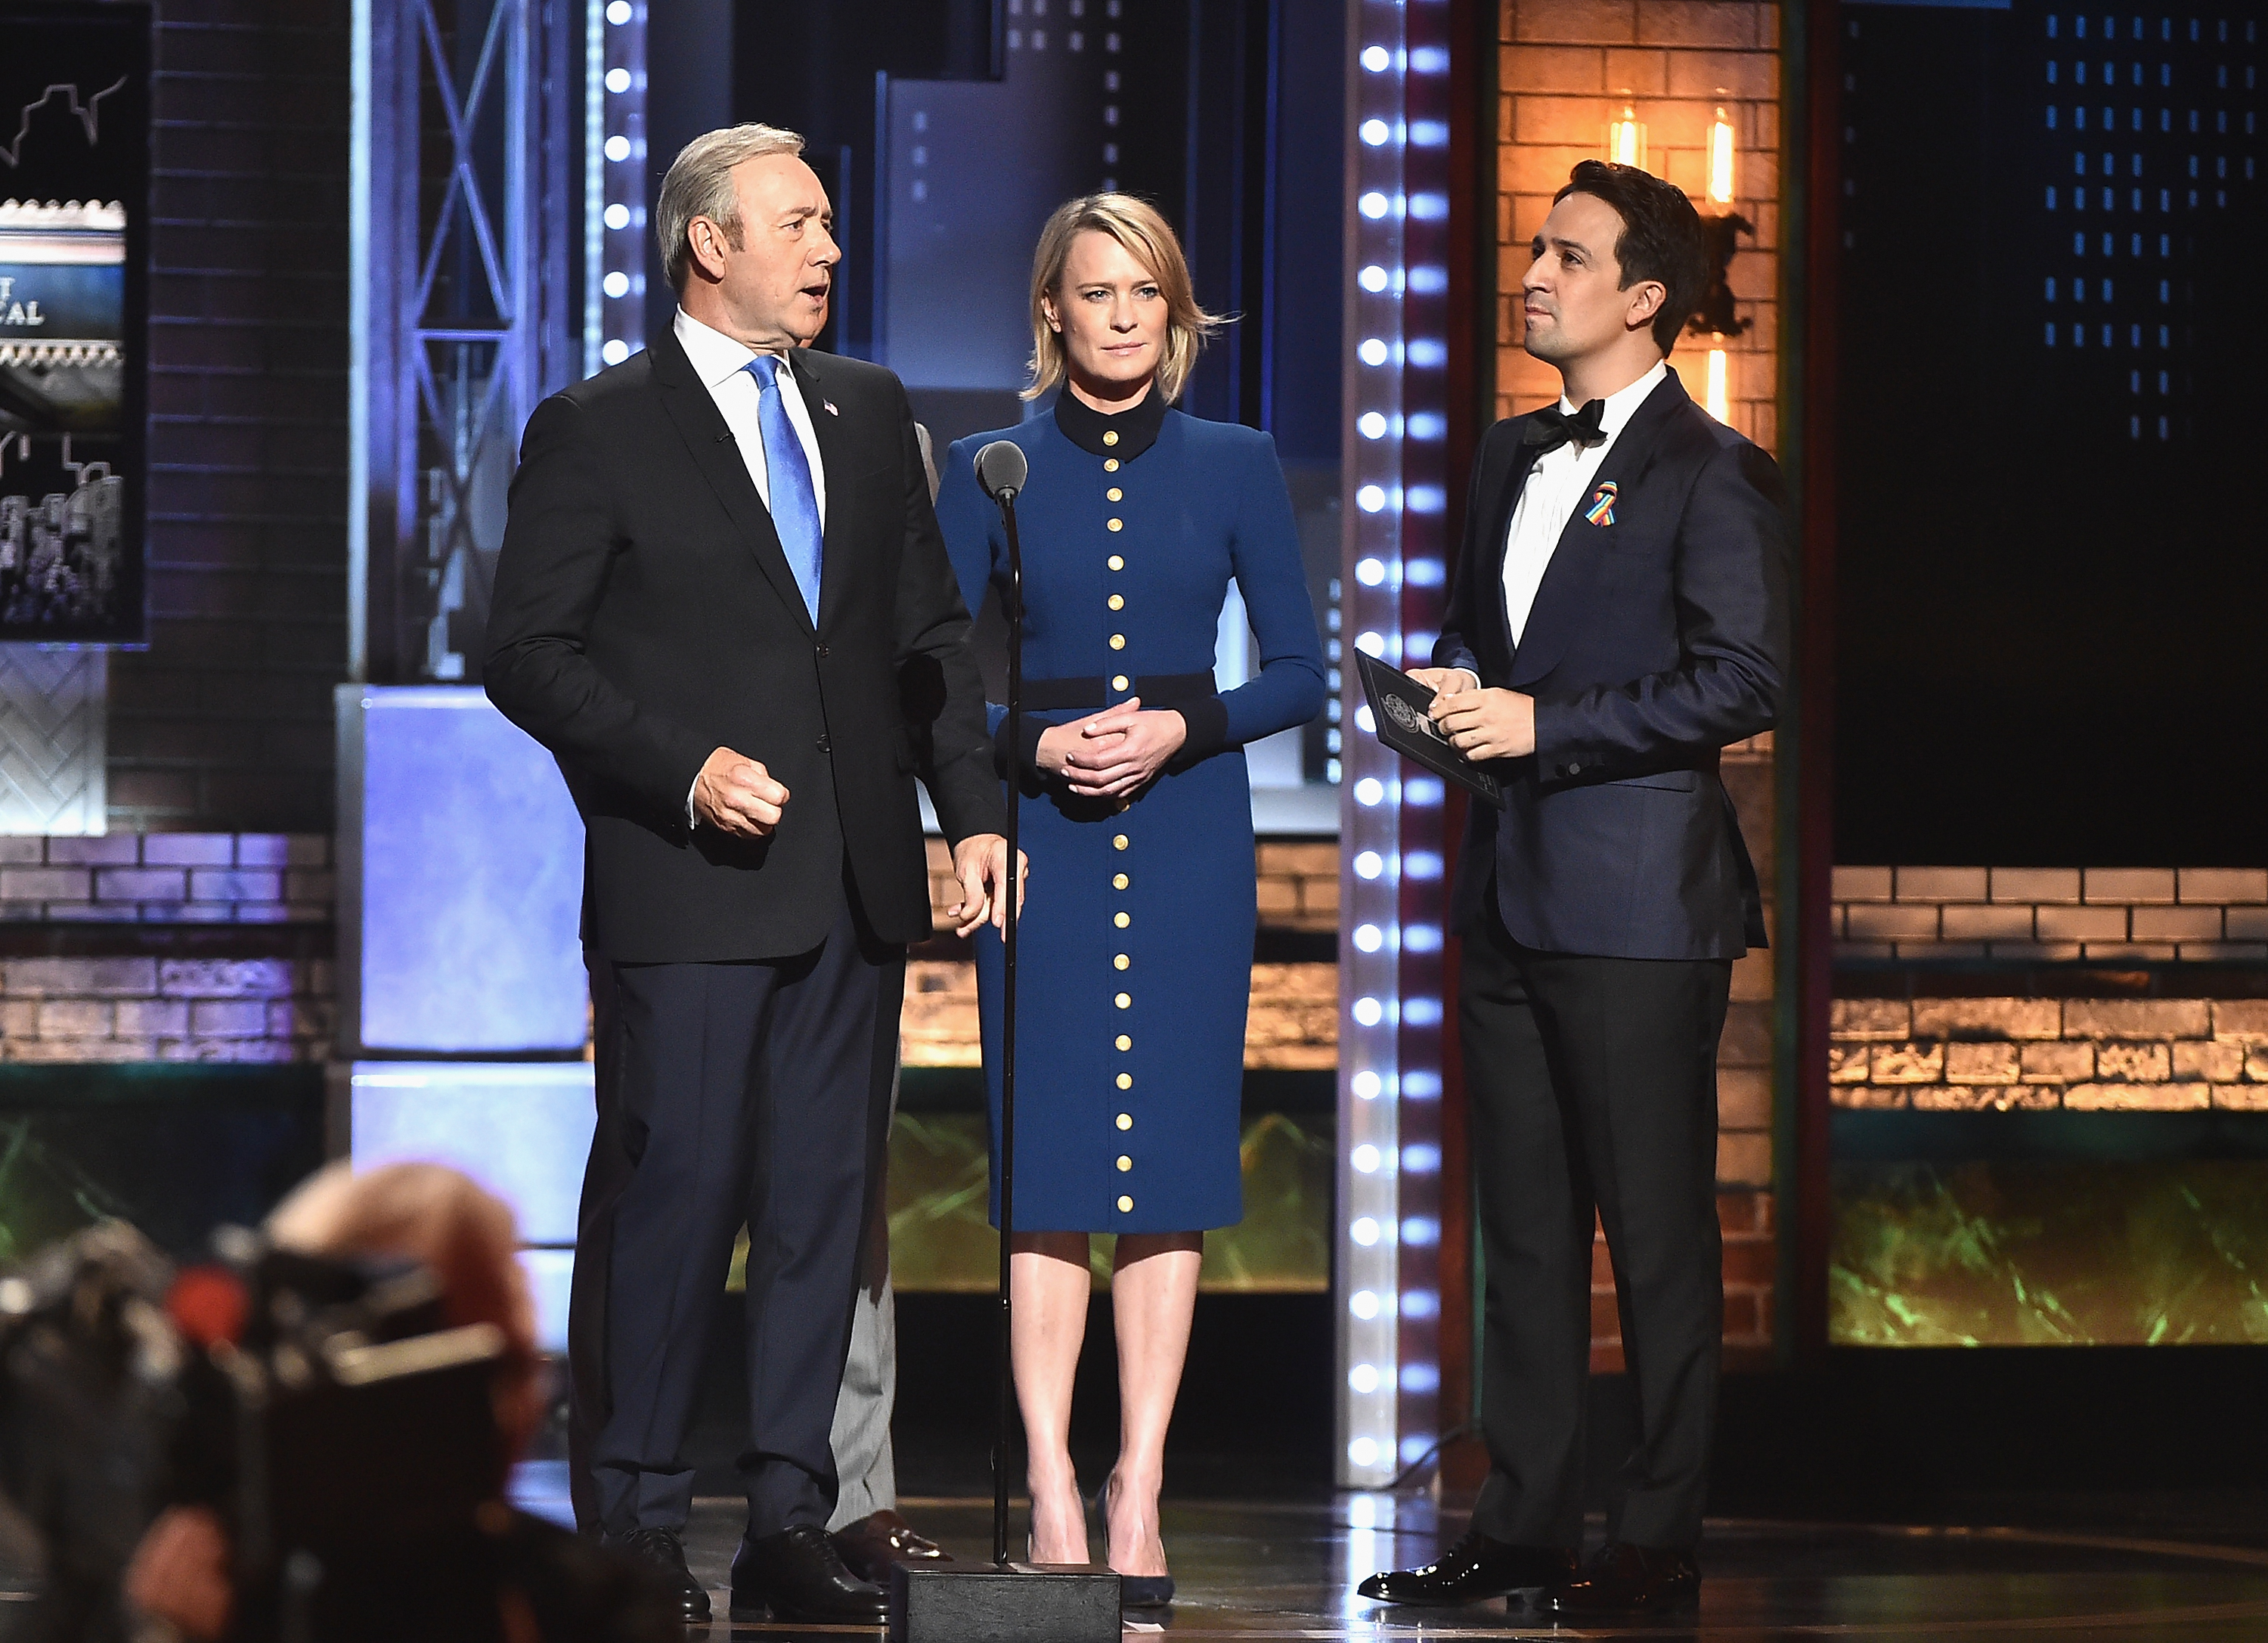 NEW YORK, NY - JUNE 11:  (L-R) Kevin Spacey, Robin Wright, and Lin-Manuel Miranda speak onstage during the 2017 Tony Awards at Radio City Music Hall on June 11, 2017 in New York City.  (Photo by Theo Wargo/Getty Images for Tony Awards Productions)